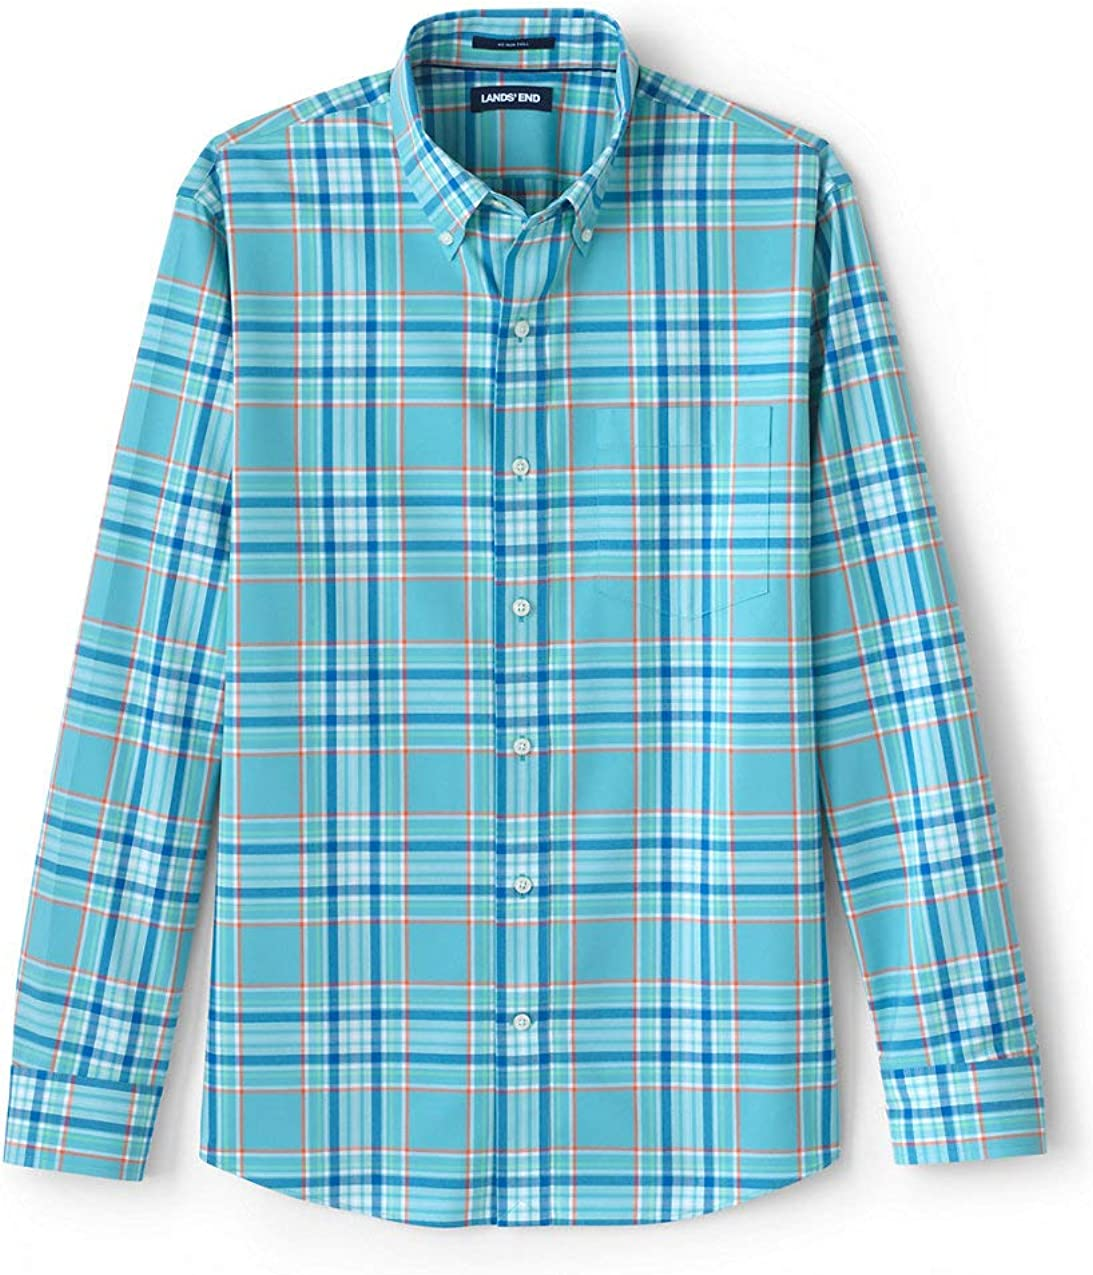 Lands' End Men's Tailored Fit No Iron Twill Shirt